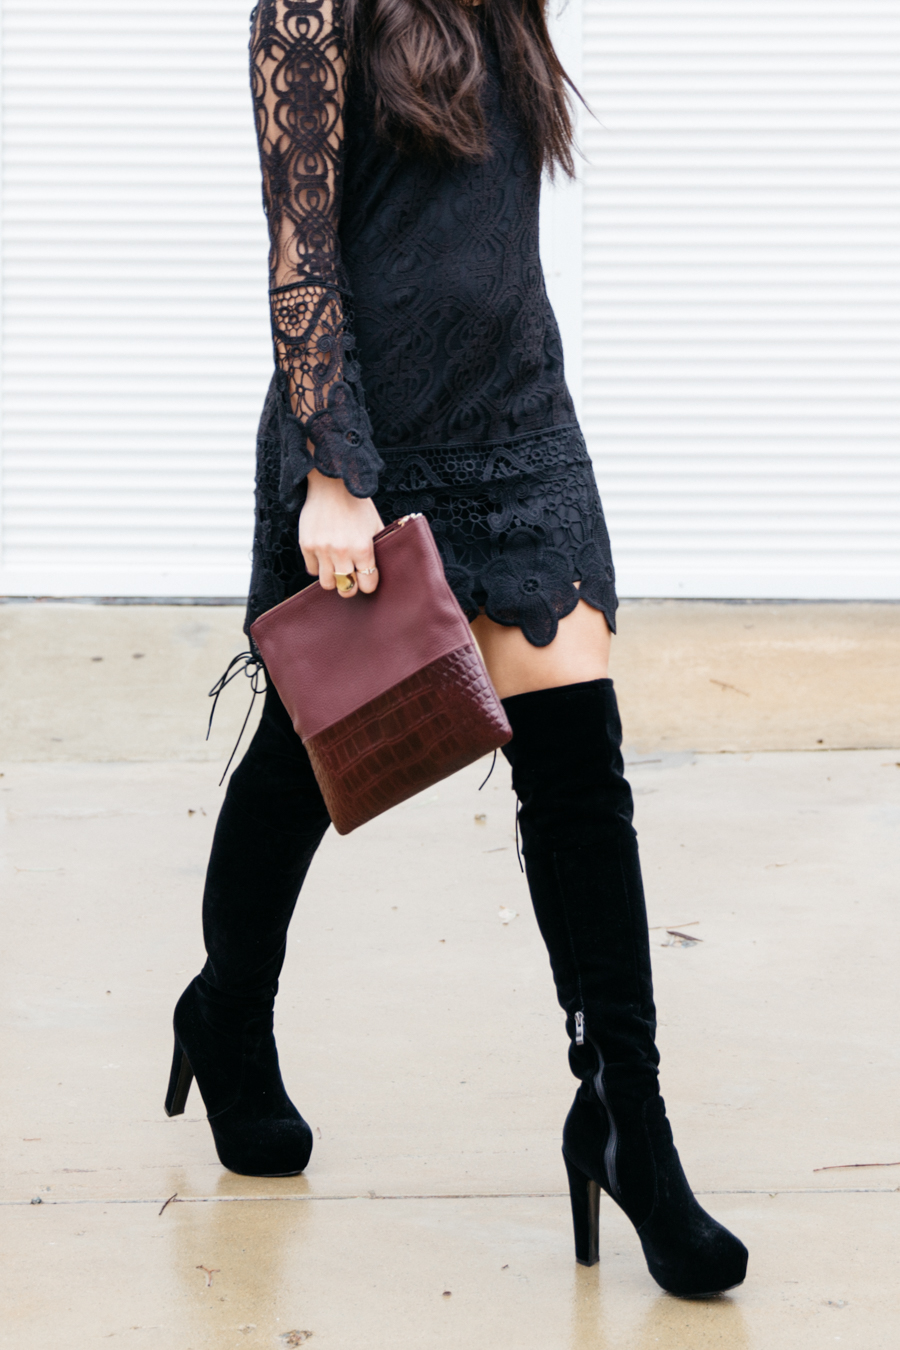 Black lace dress & over the knee boots.